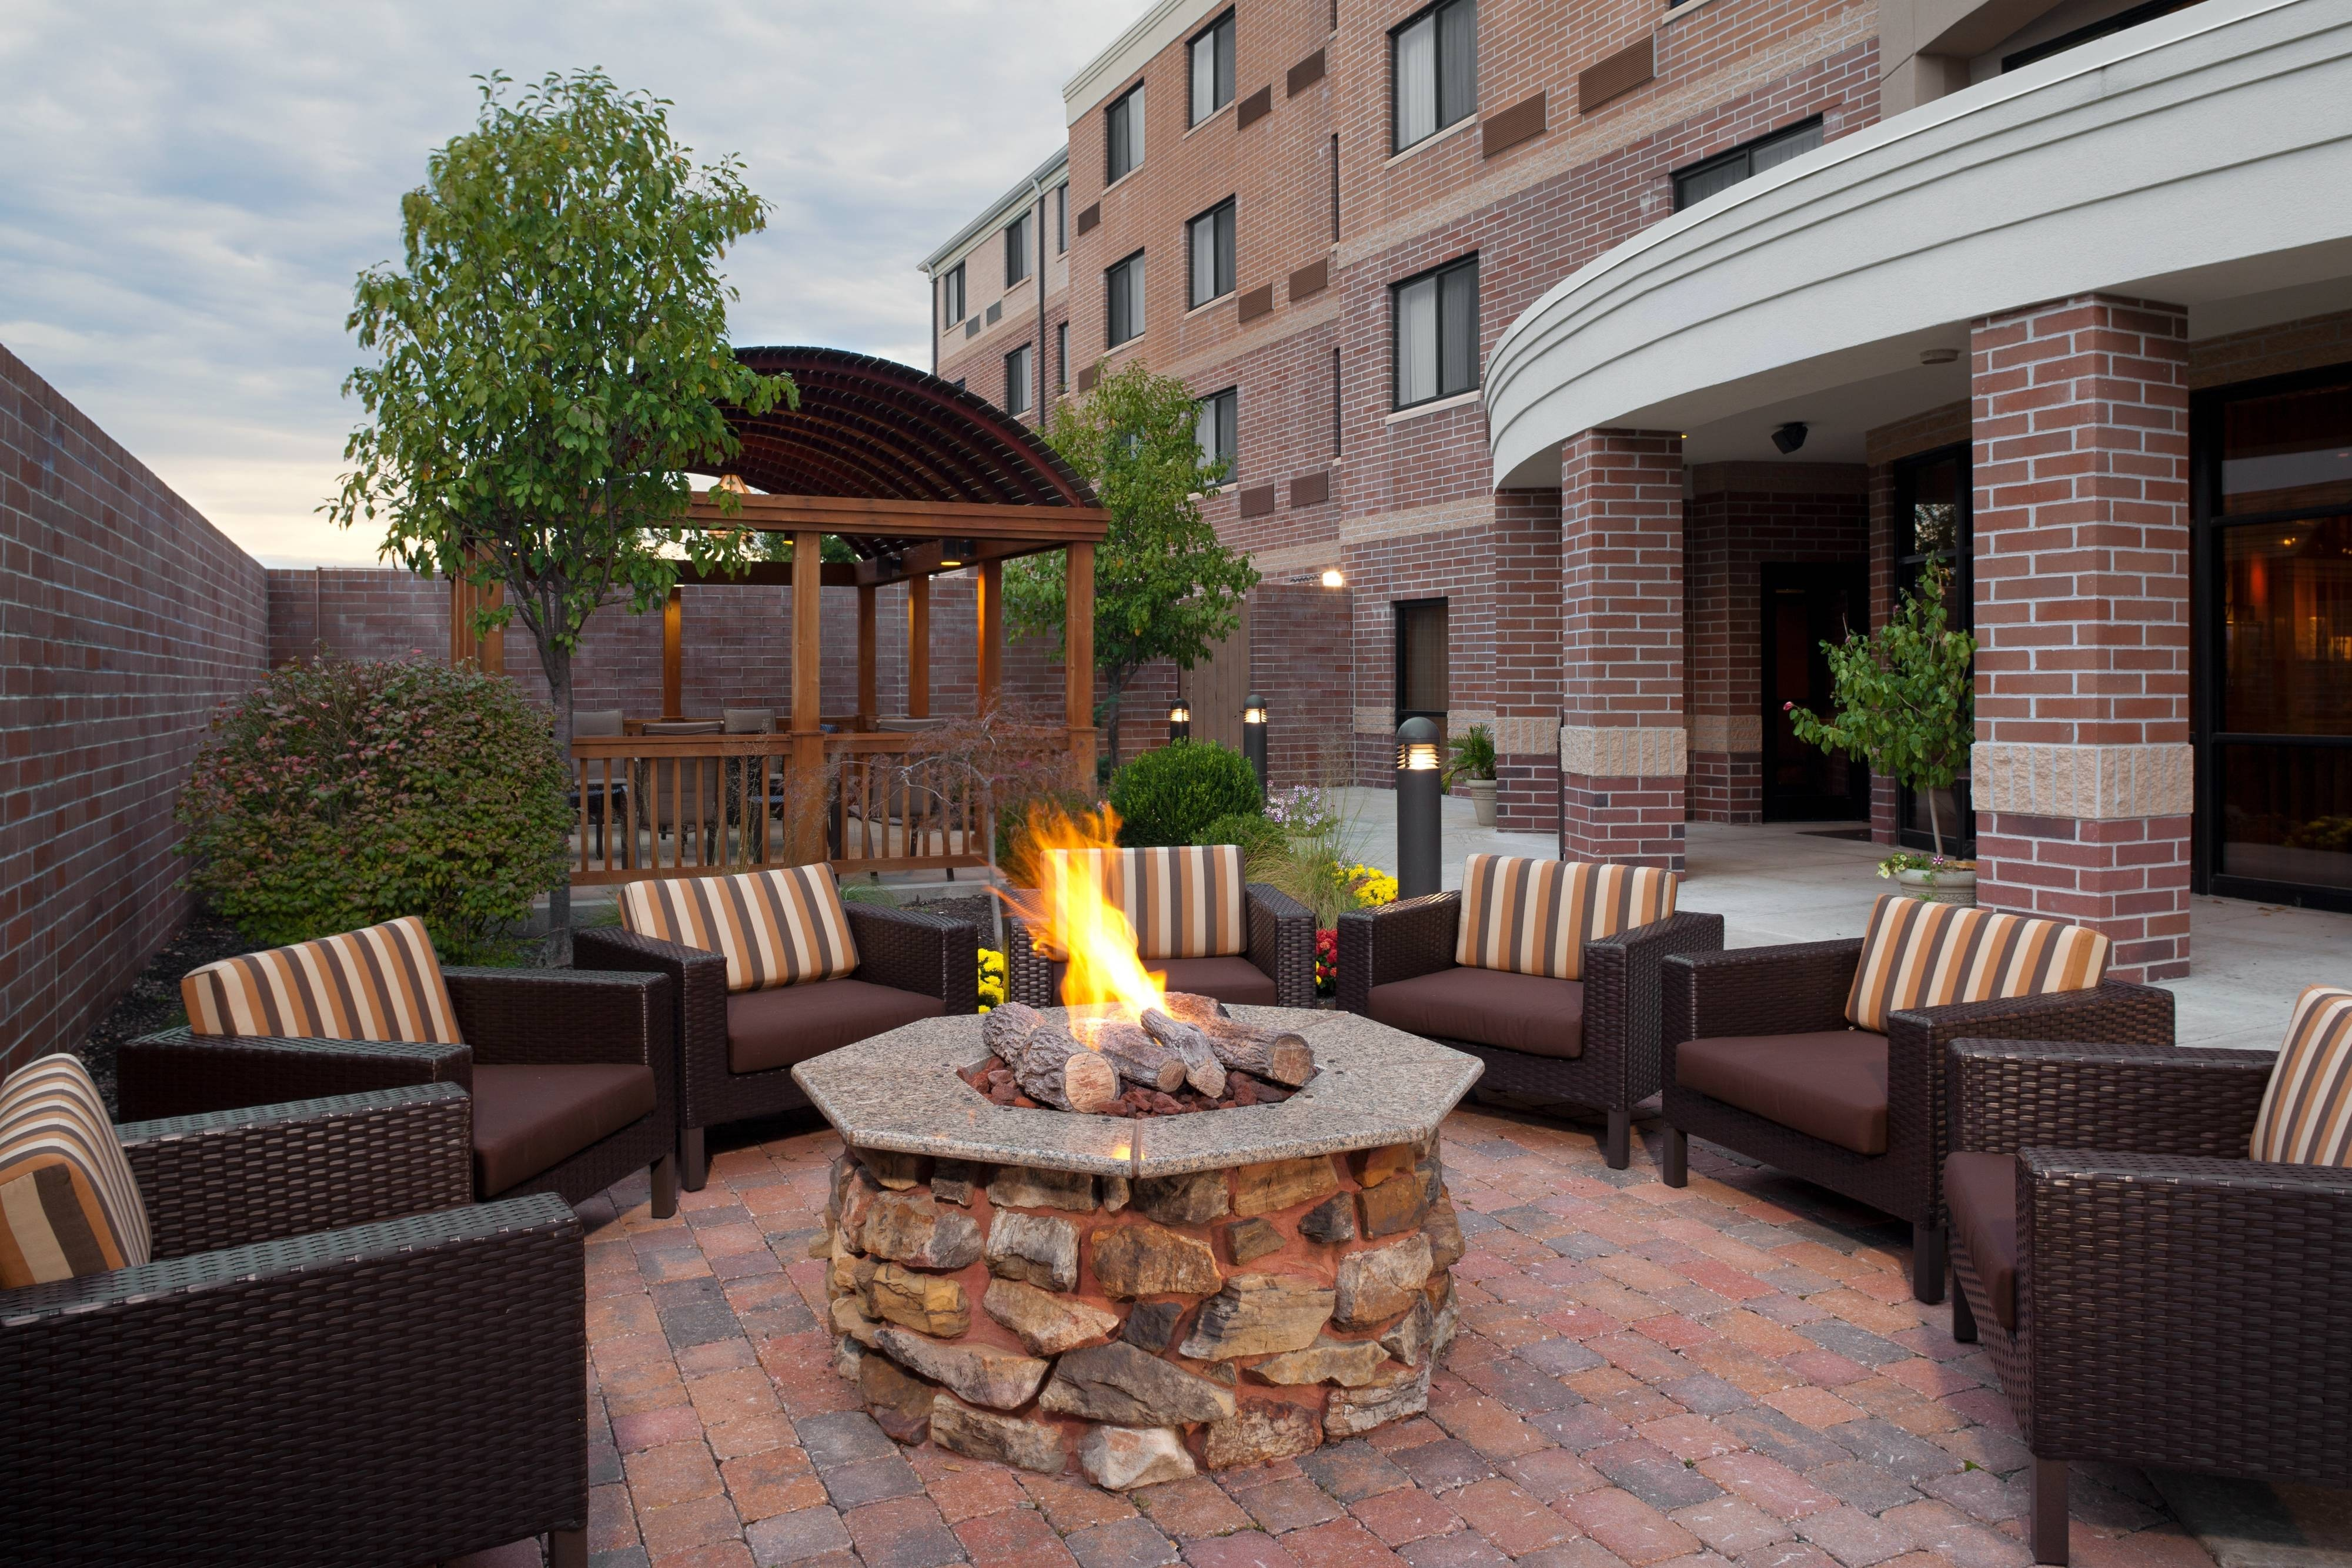 Columbia hotel fire pit